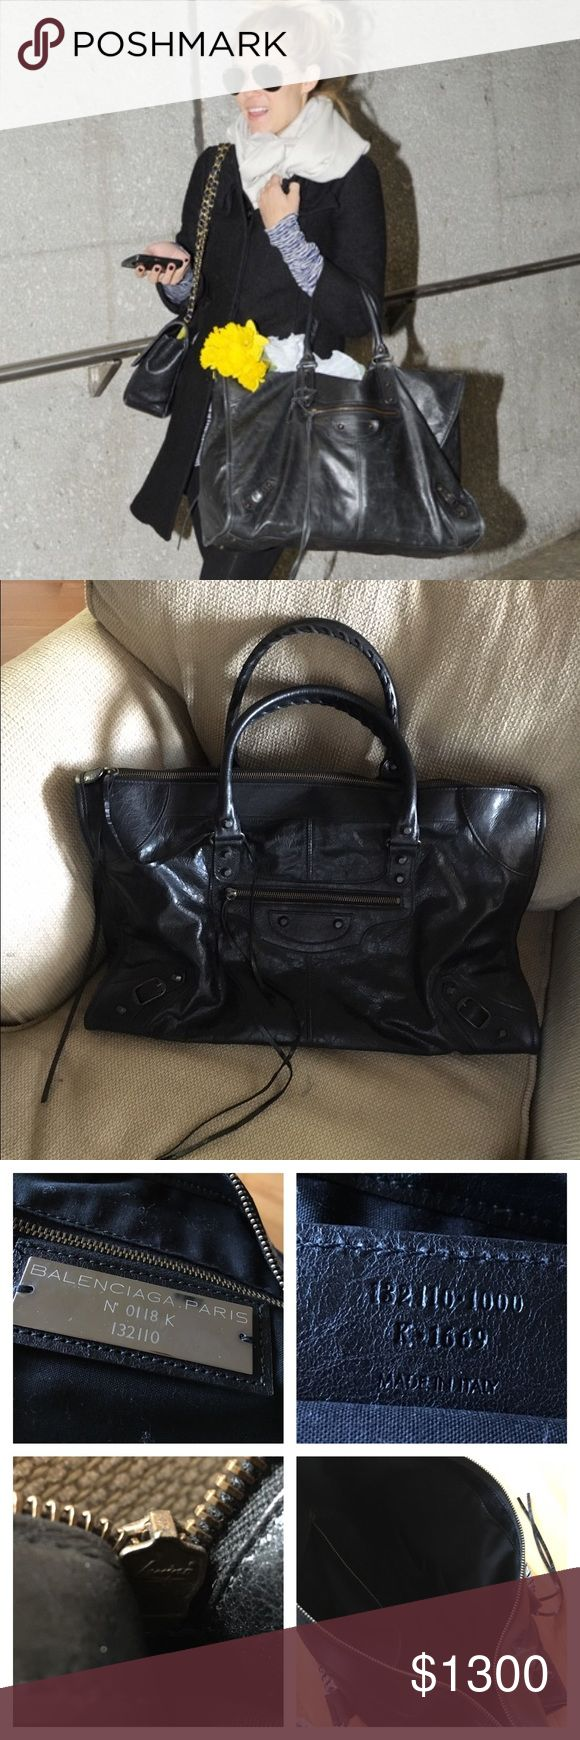 Balenciaga Weekender More details available soon. NO TRADES. Balenciaga Bags Totes